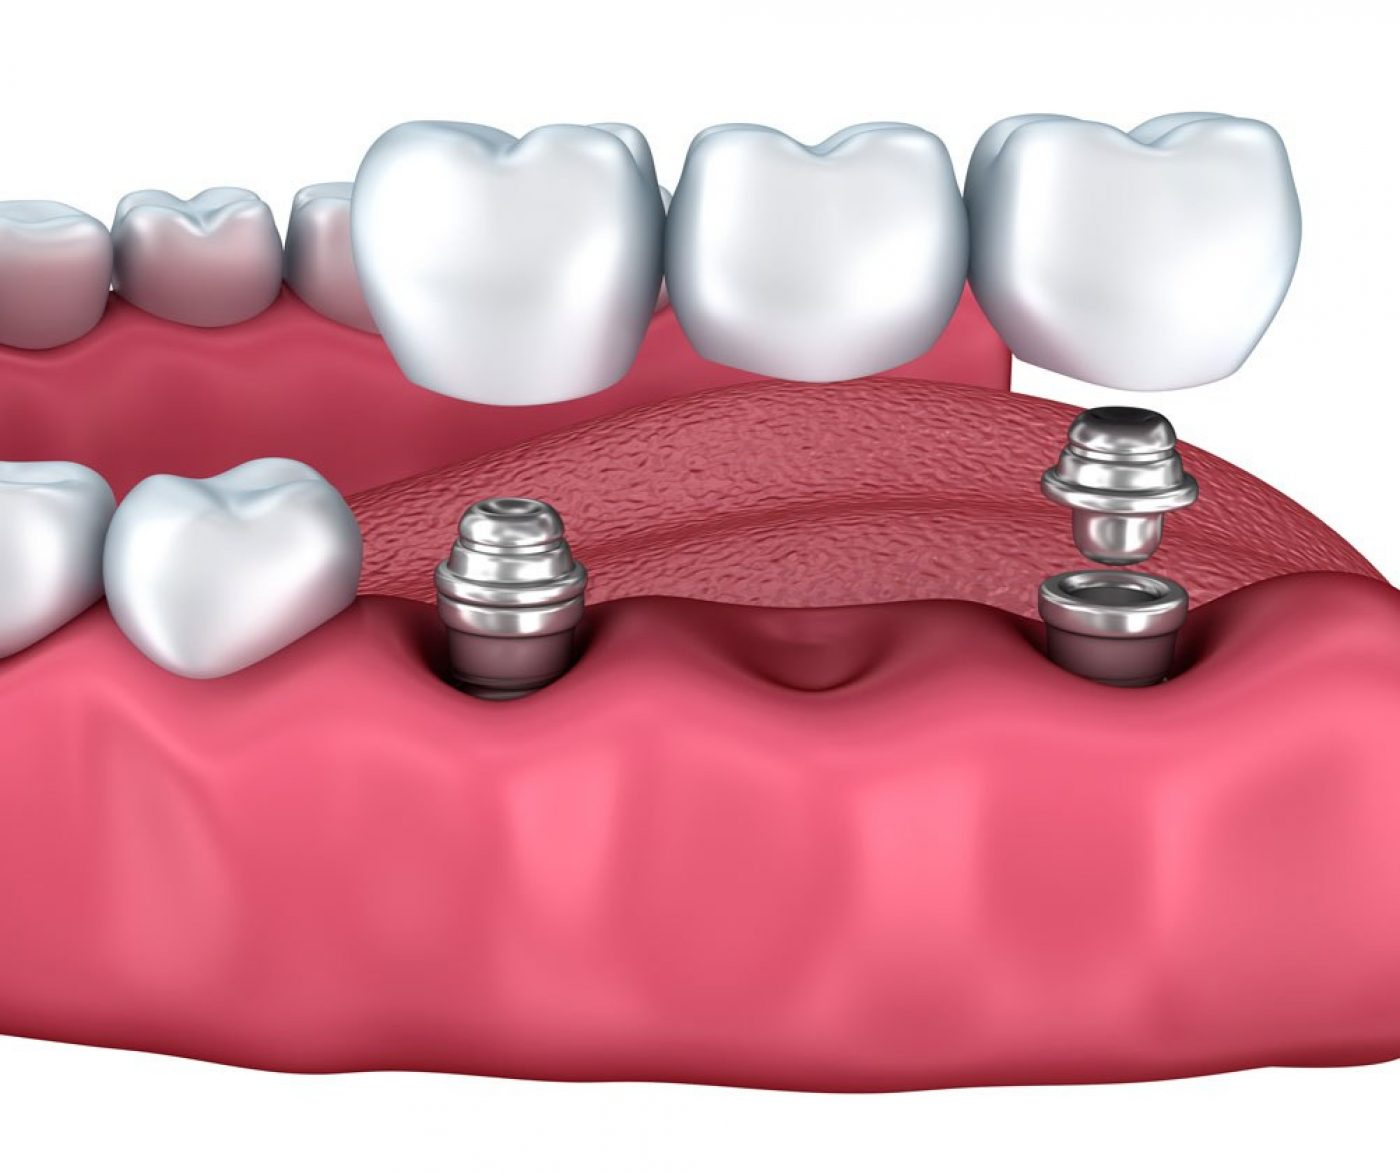 Brickstables Dental Implants Multiple